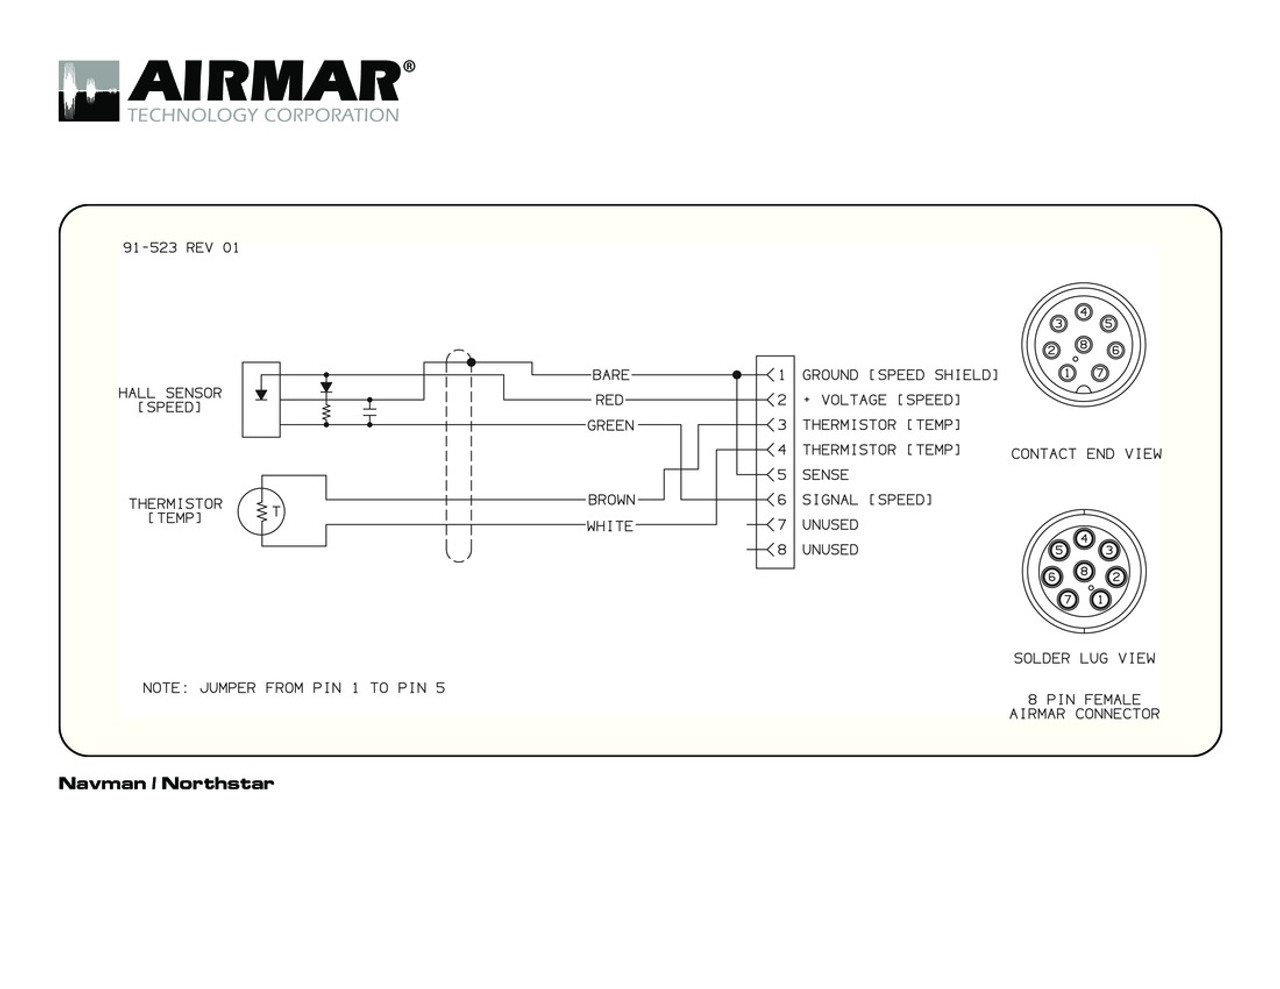 northstar wiring diagram wiring diagram schematic diagram example northstar wiring diagram wiring diagram